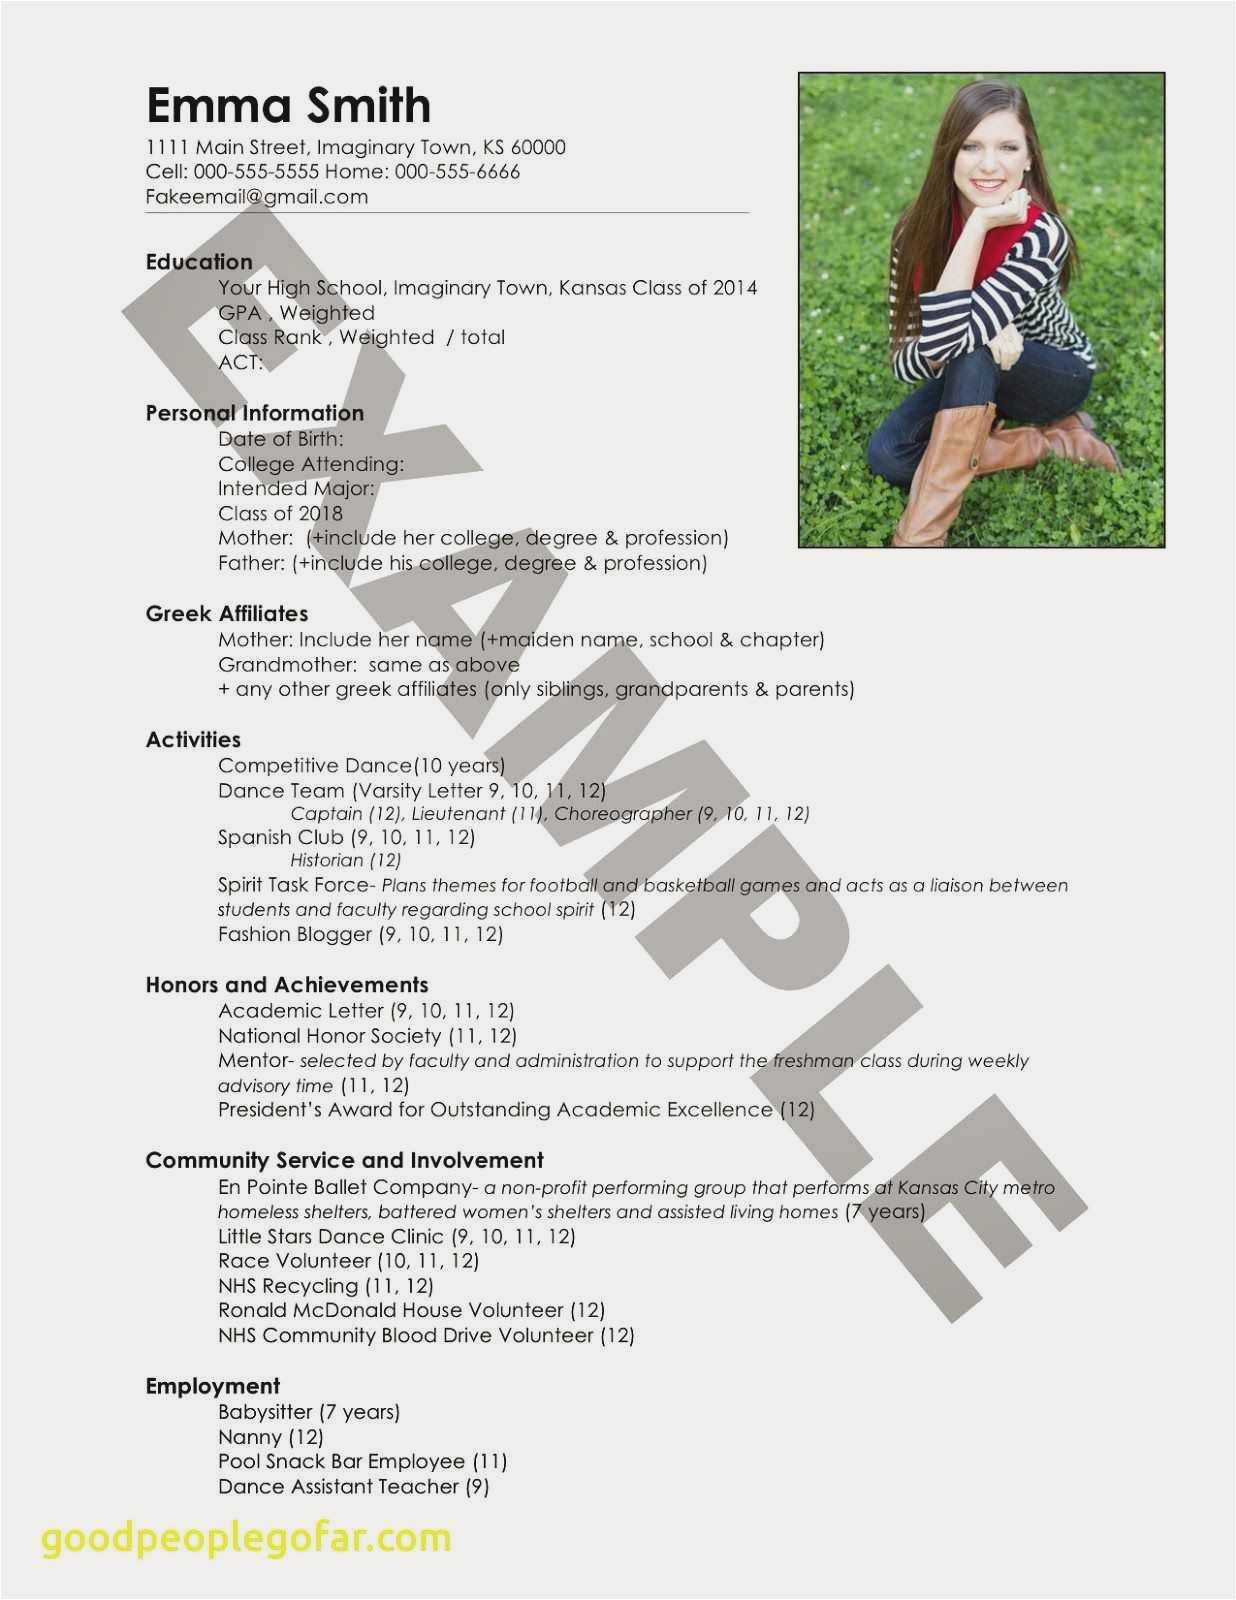 Community Service Resume - Achievements In Resume for Students Professional Lovely Entry Level